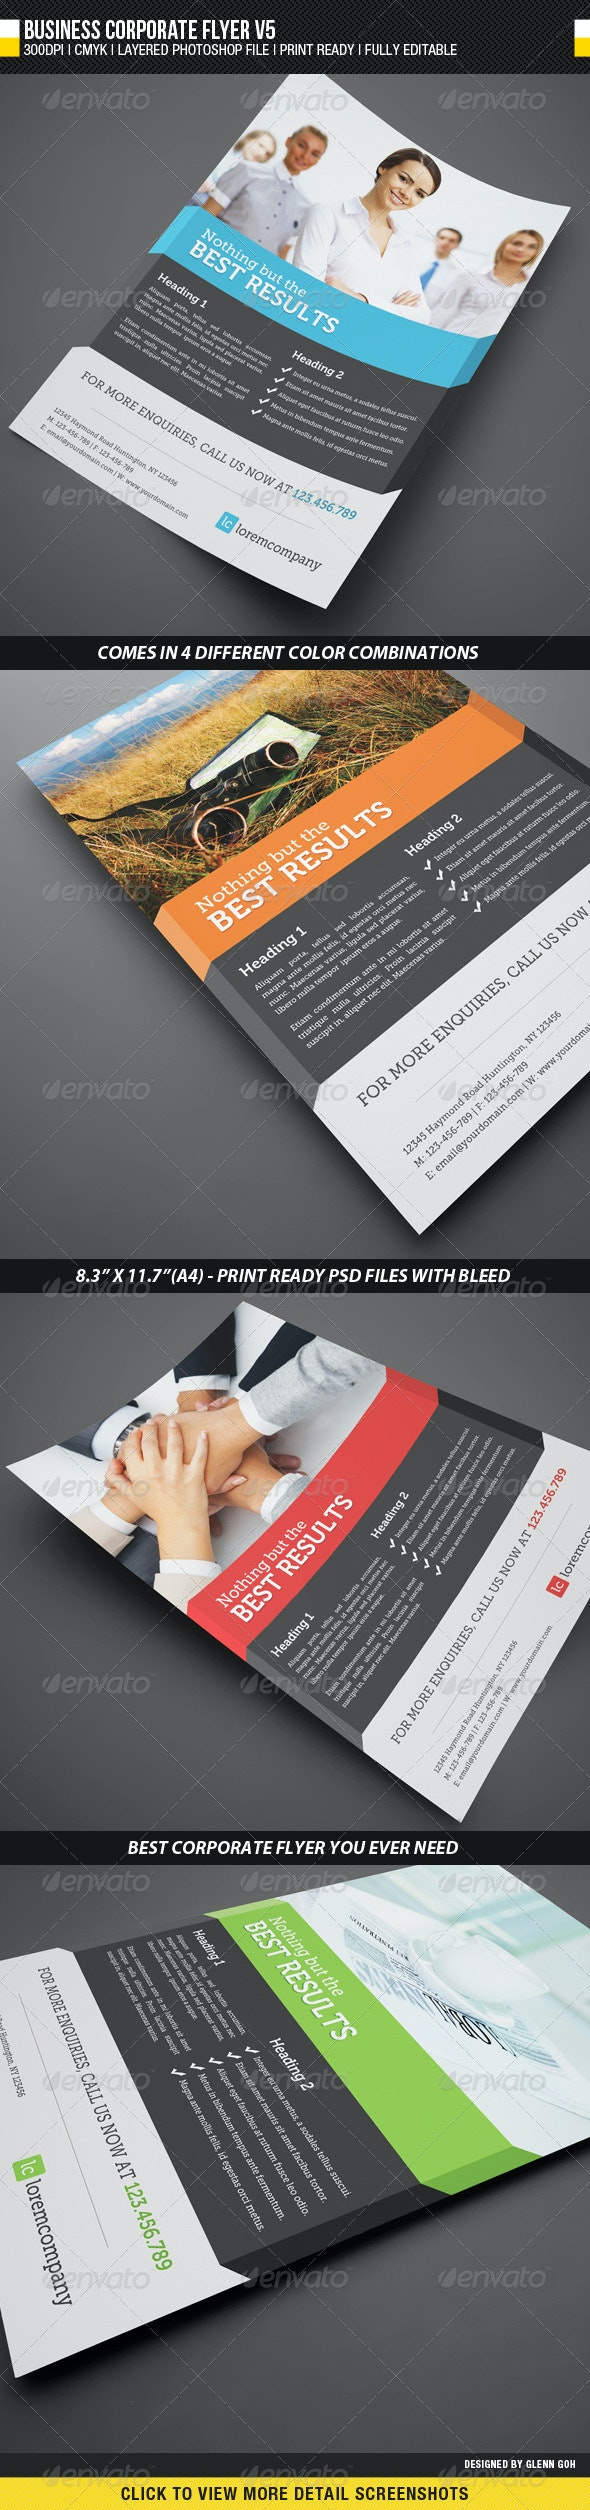 Business Corporate Flyer V5 - Corporate Flyers